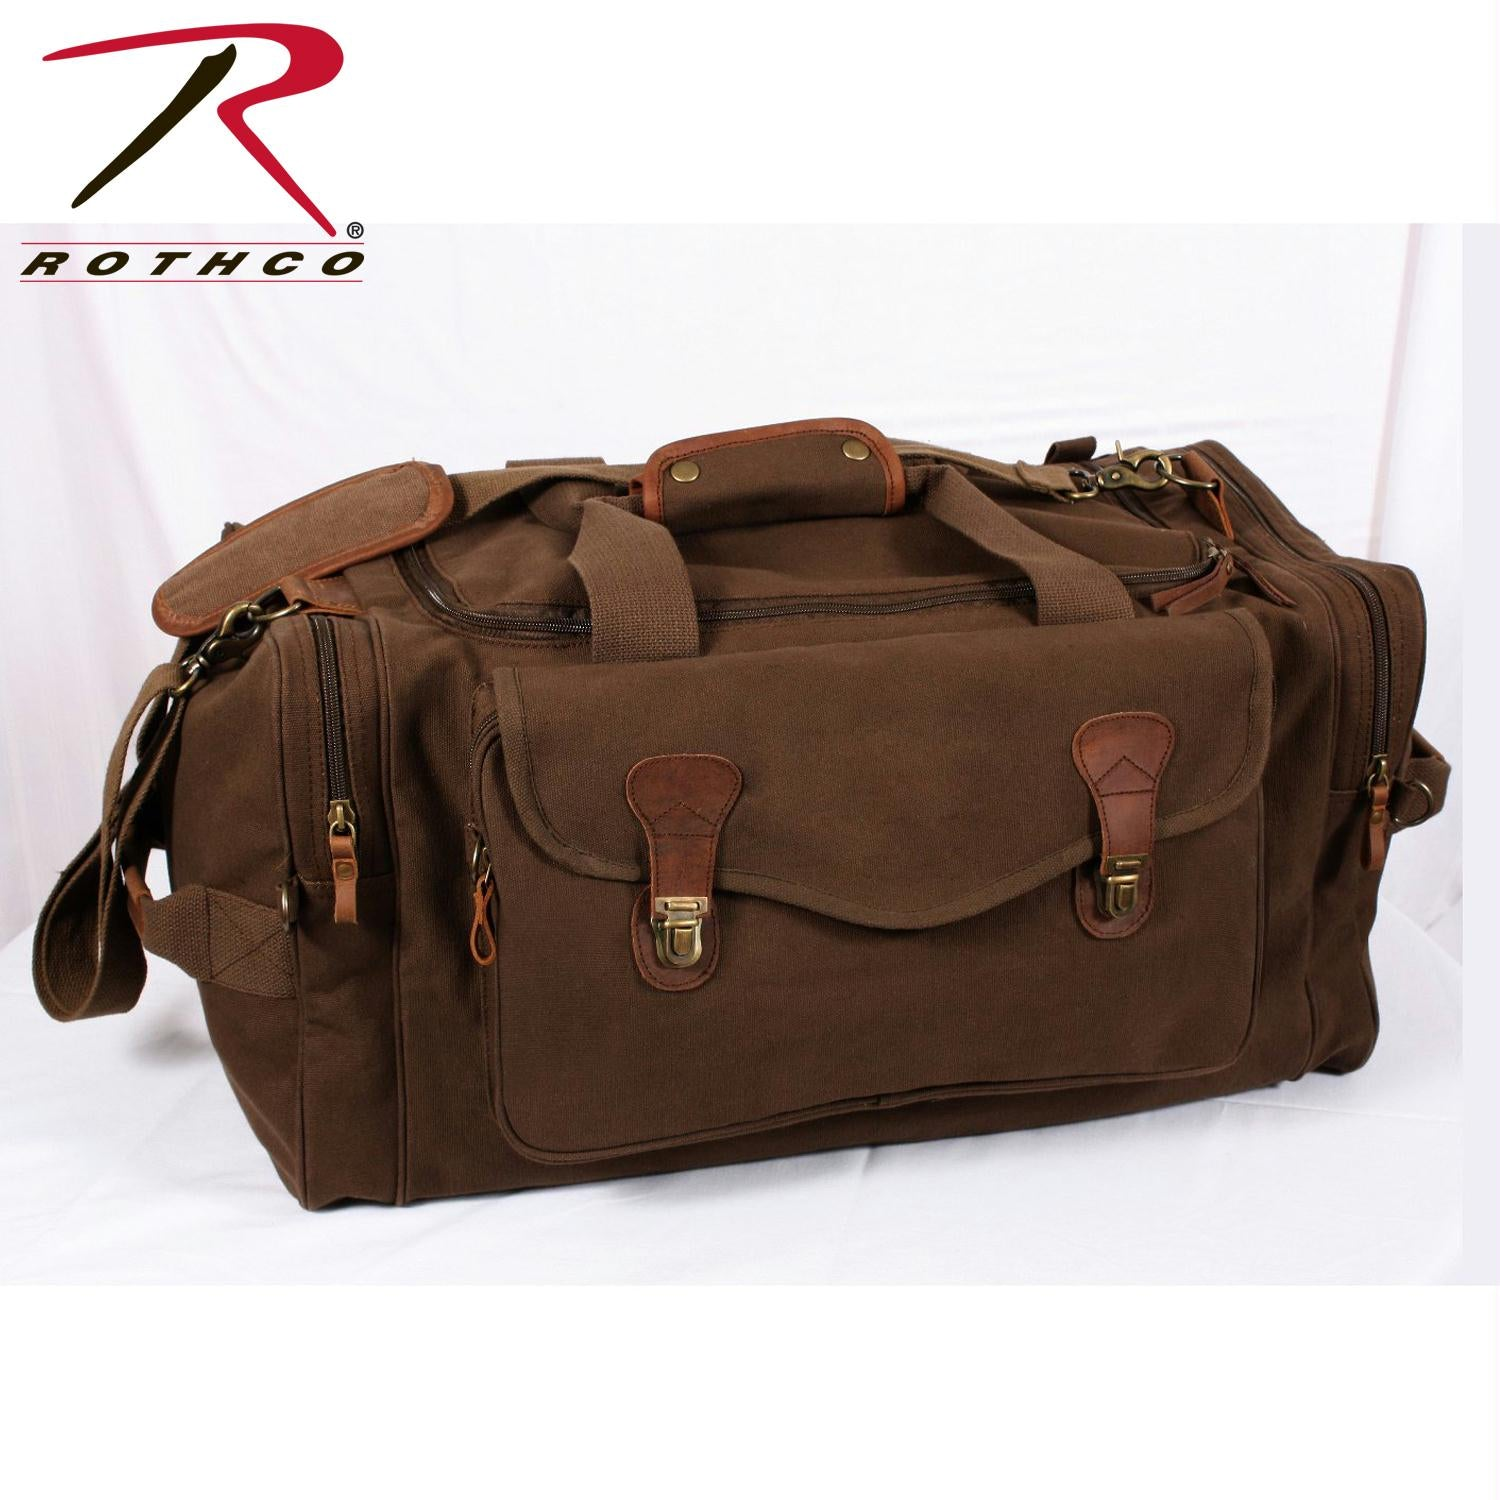 Rothco Canvas Long Weekend Bag - Brown